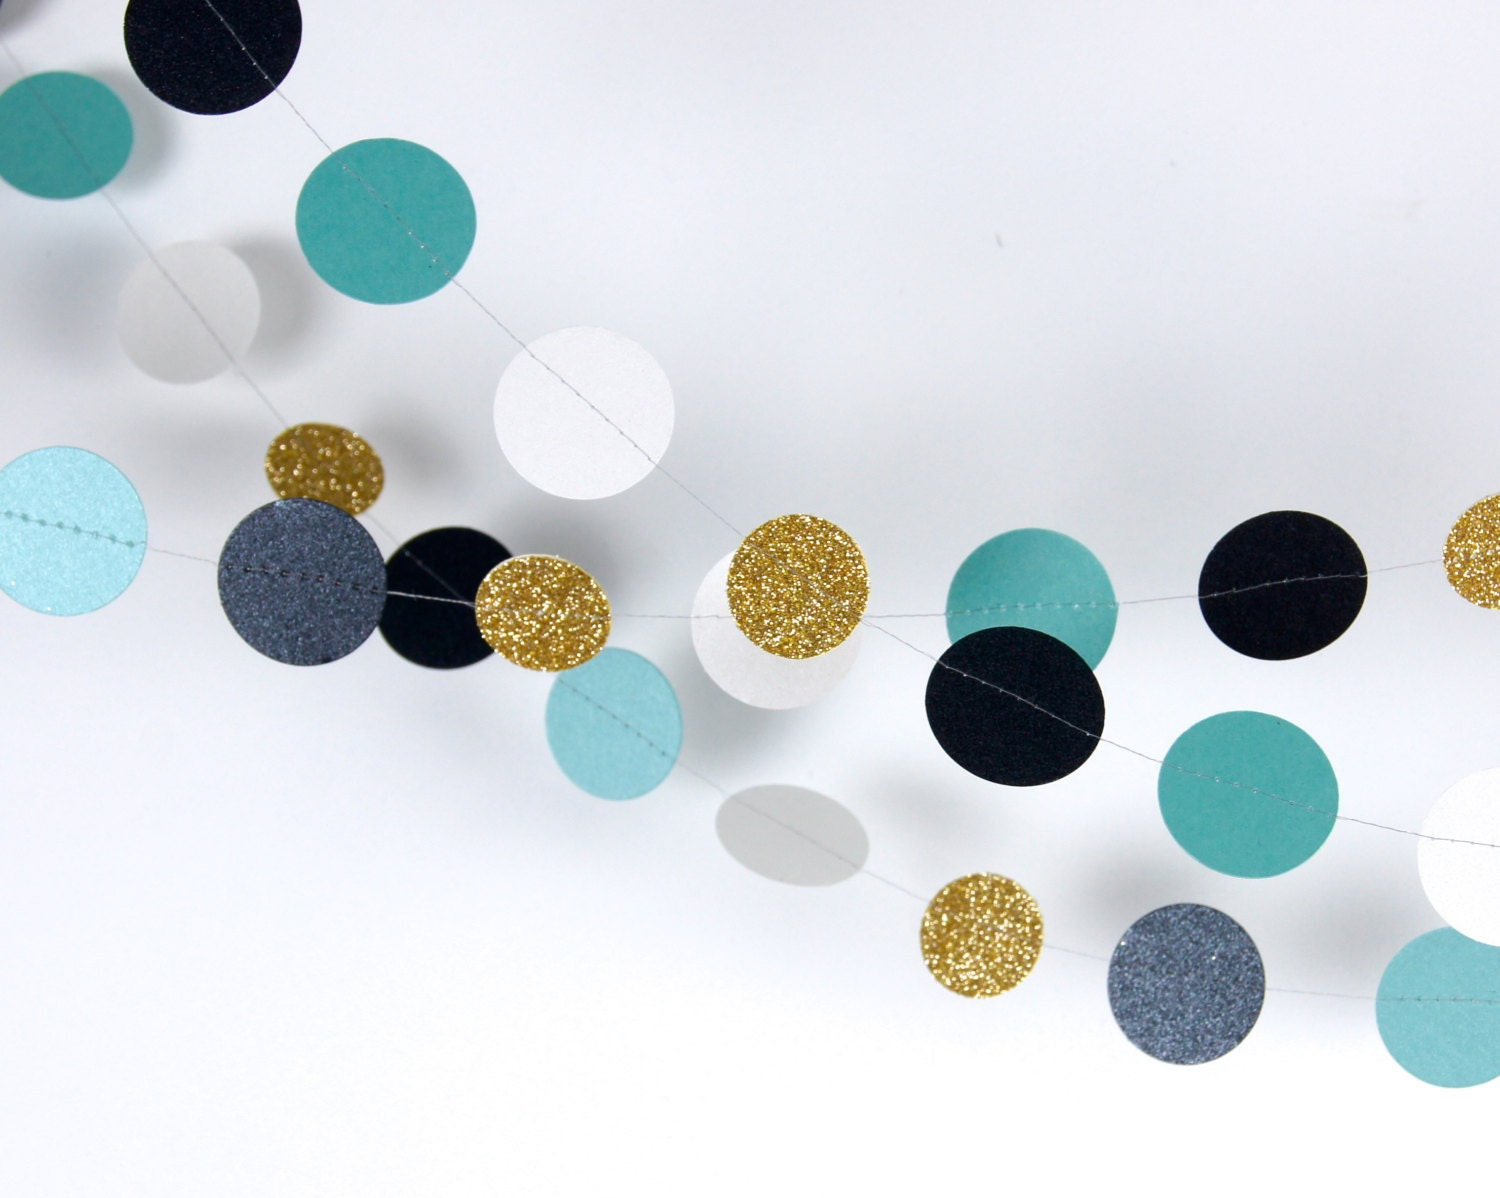 White And Gold Decor Paper Garland In Teal Black White And Gold 20 Colors It Is